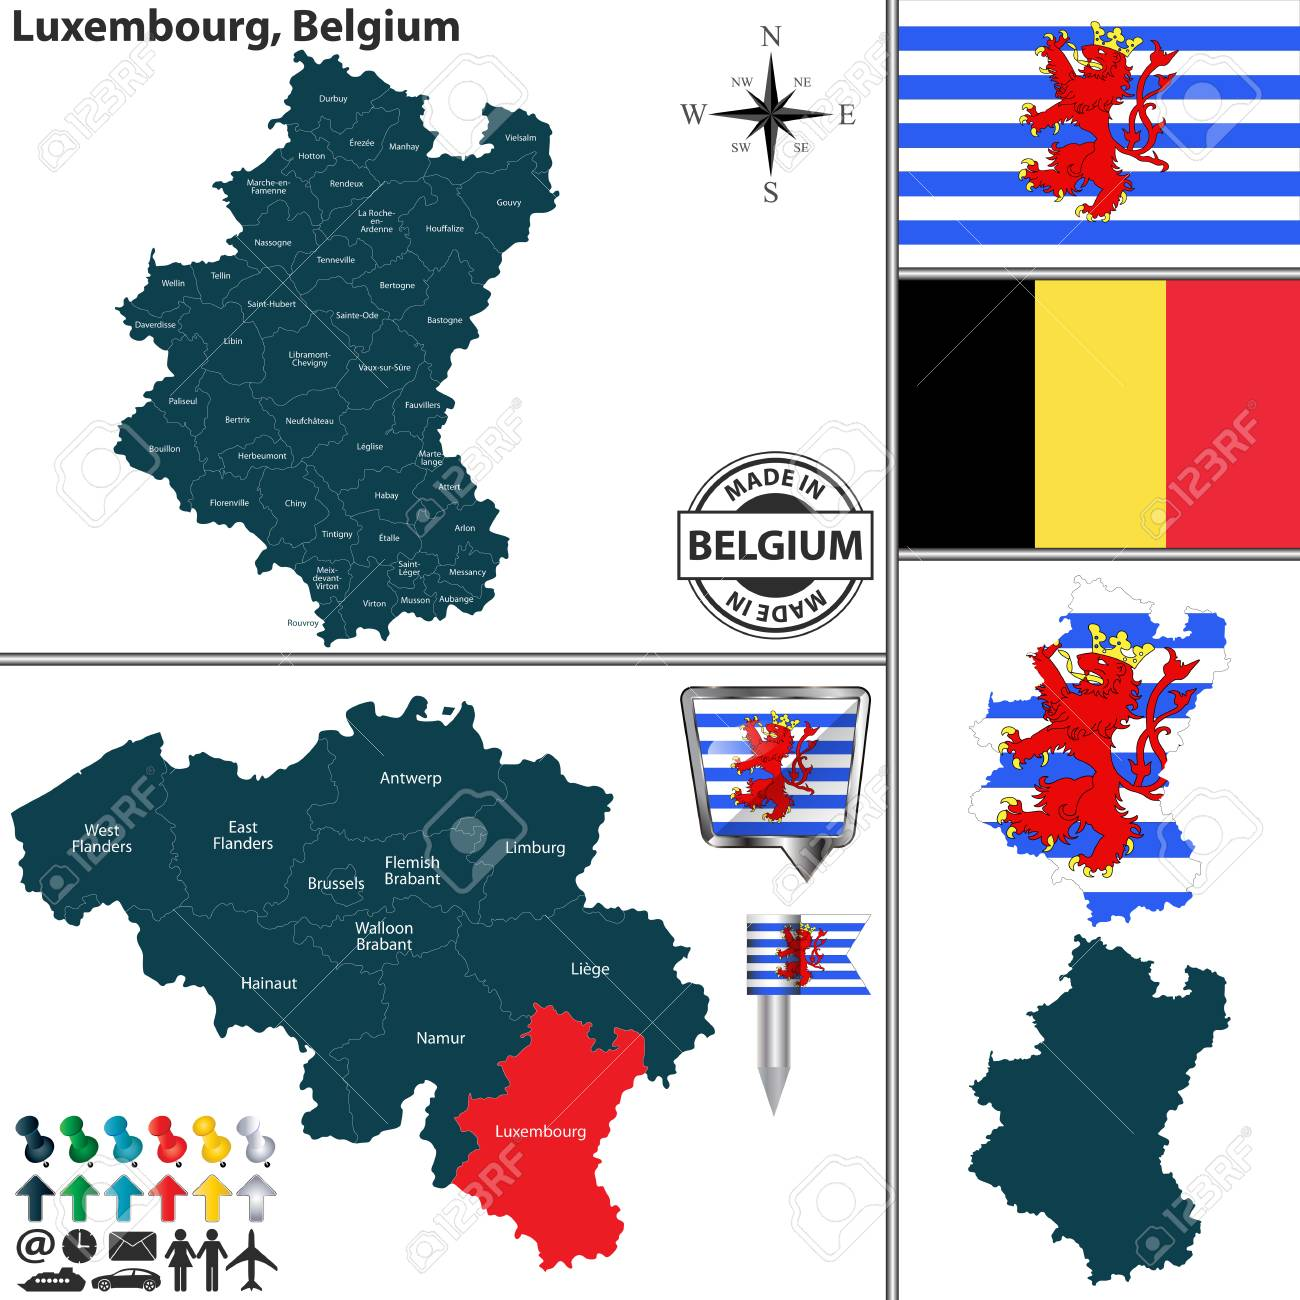 Vector map of Luxembourg region and location on Belgian map